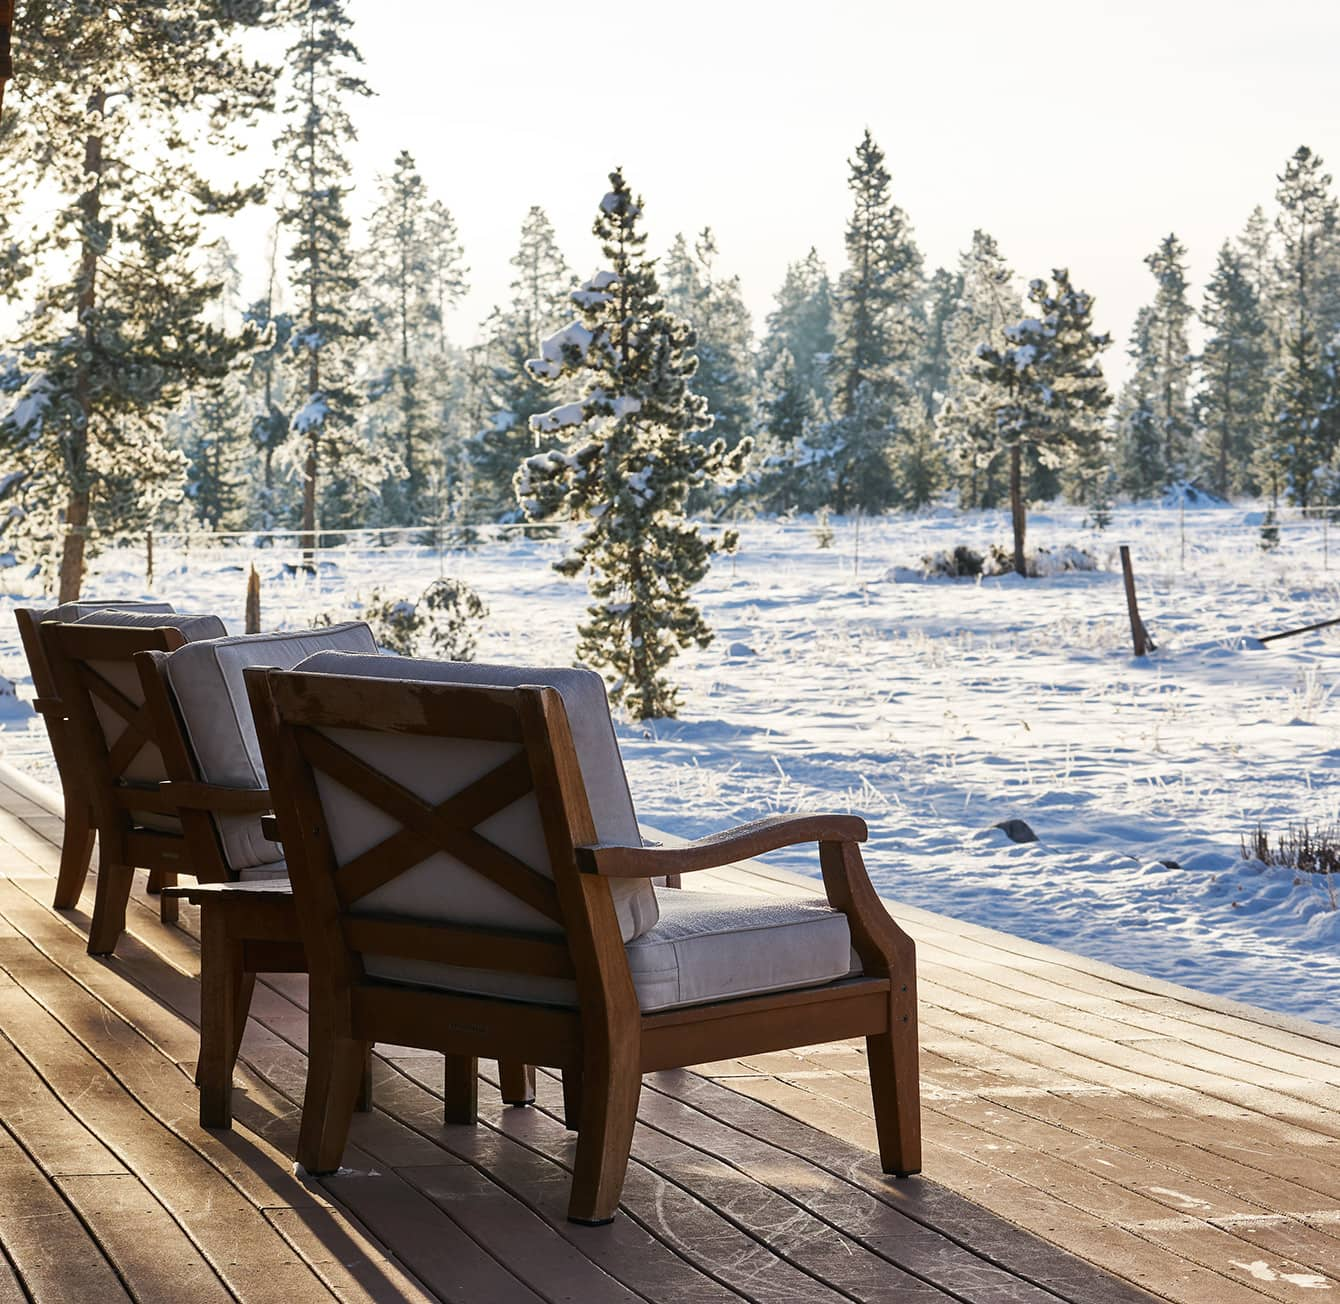 chairs on wooden deck looking at snowy landscape at Wild Horse Inn